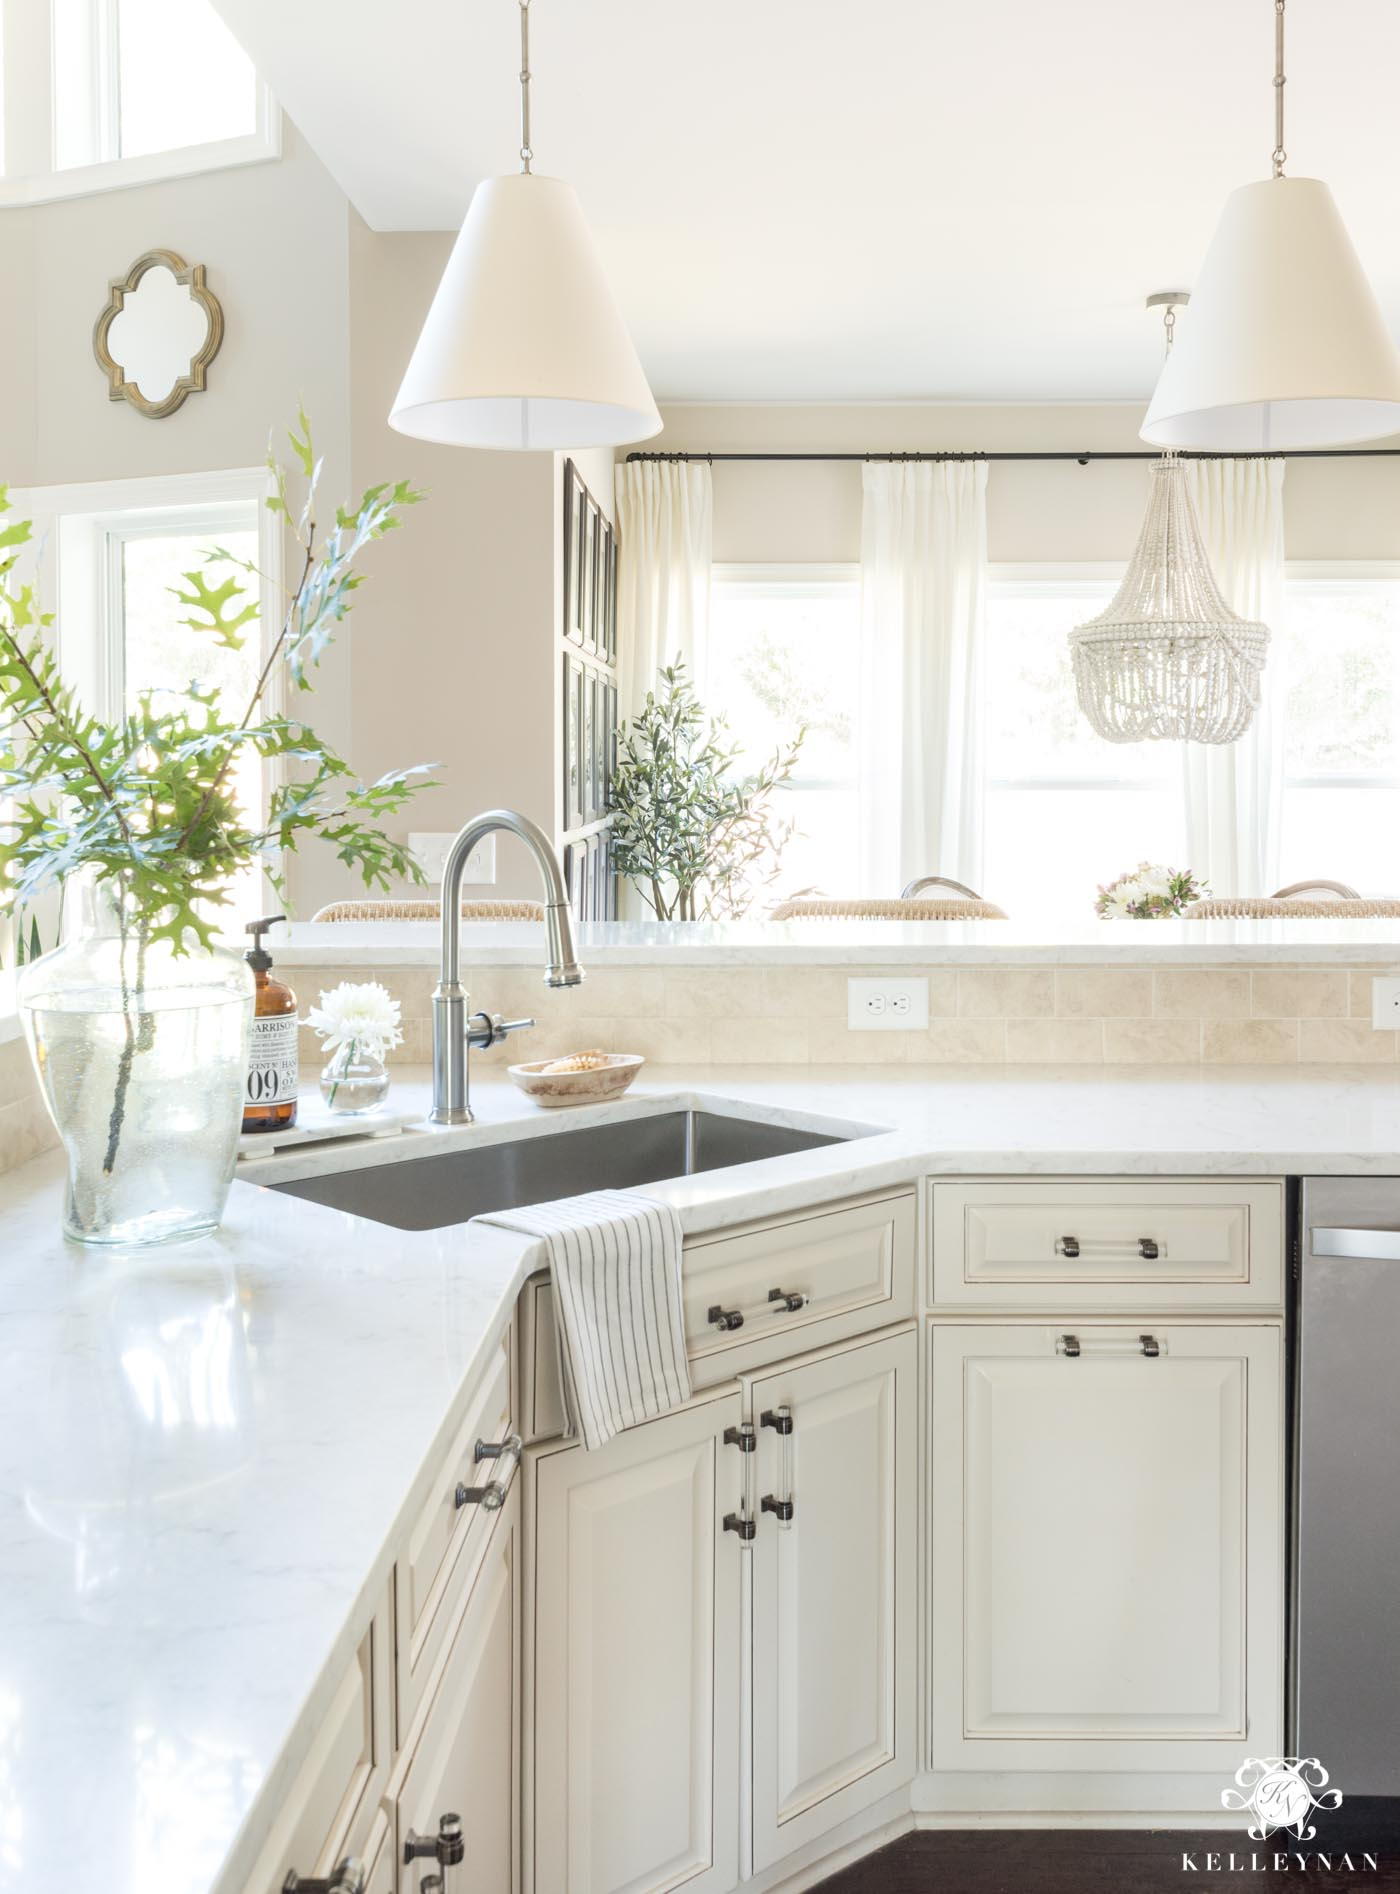 Update And Make A Traditional Cream Kitchen More Modern On Budget